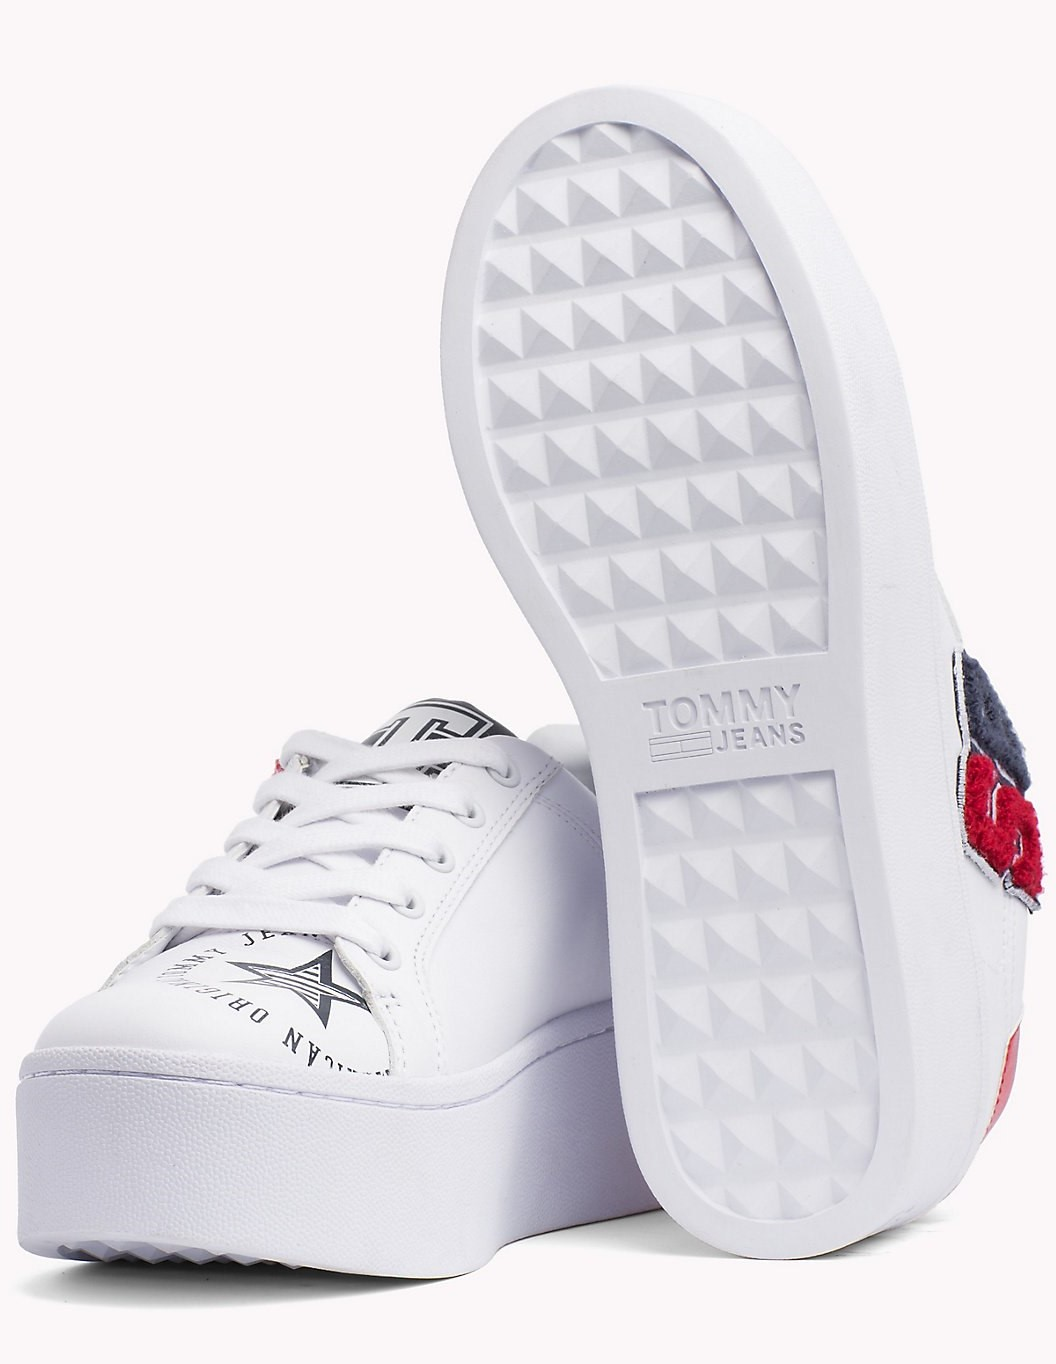 Tommy Hilfiger white leather sneakers on the TJ85 platform Icon Sneaker 18c90414966